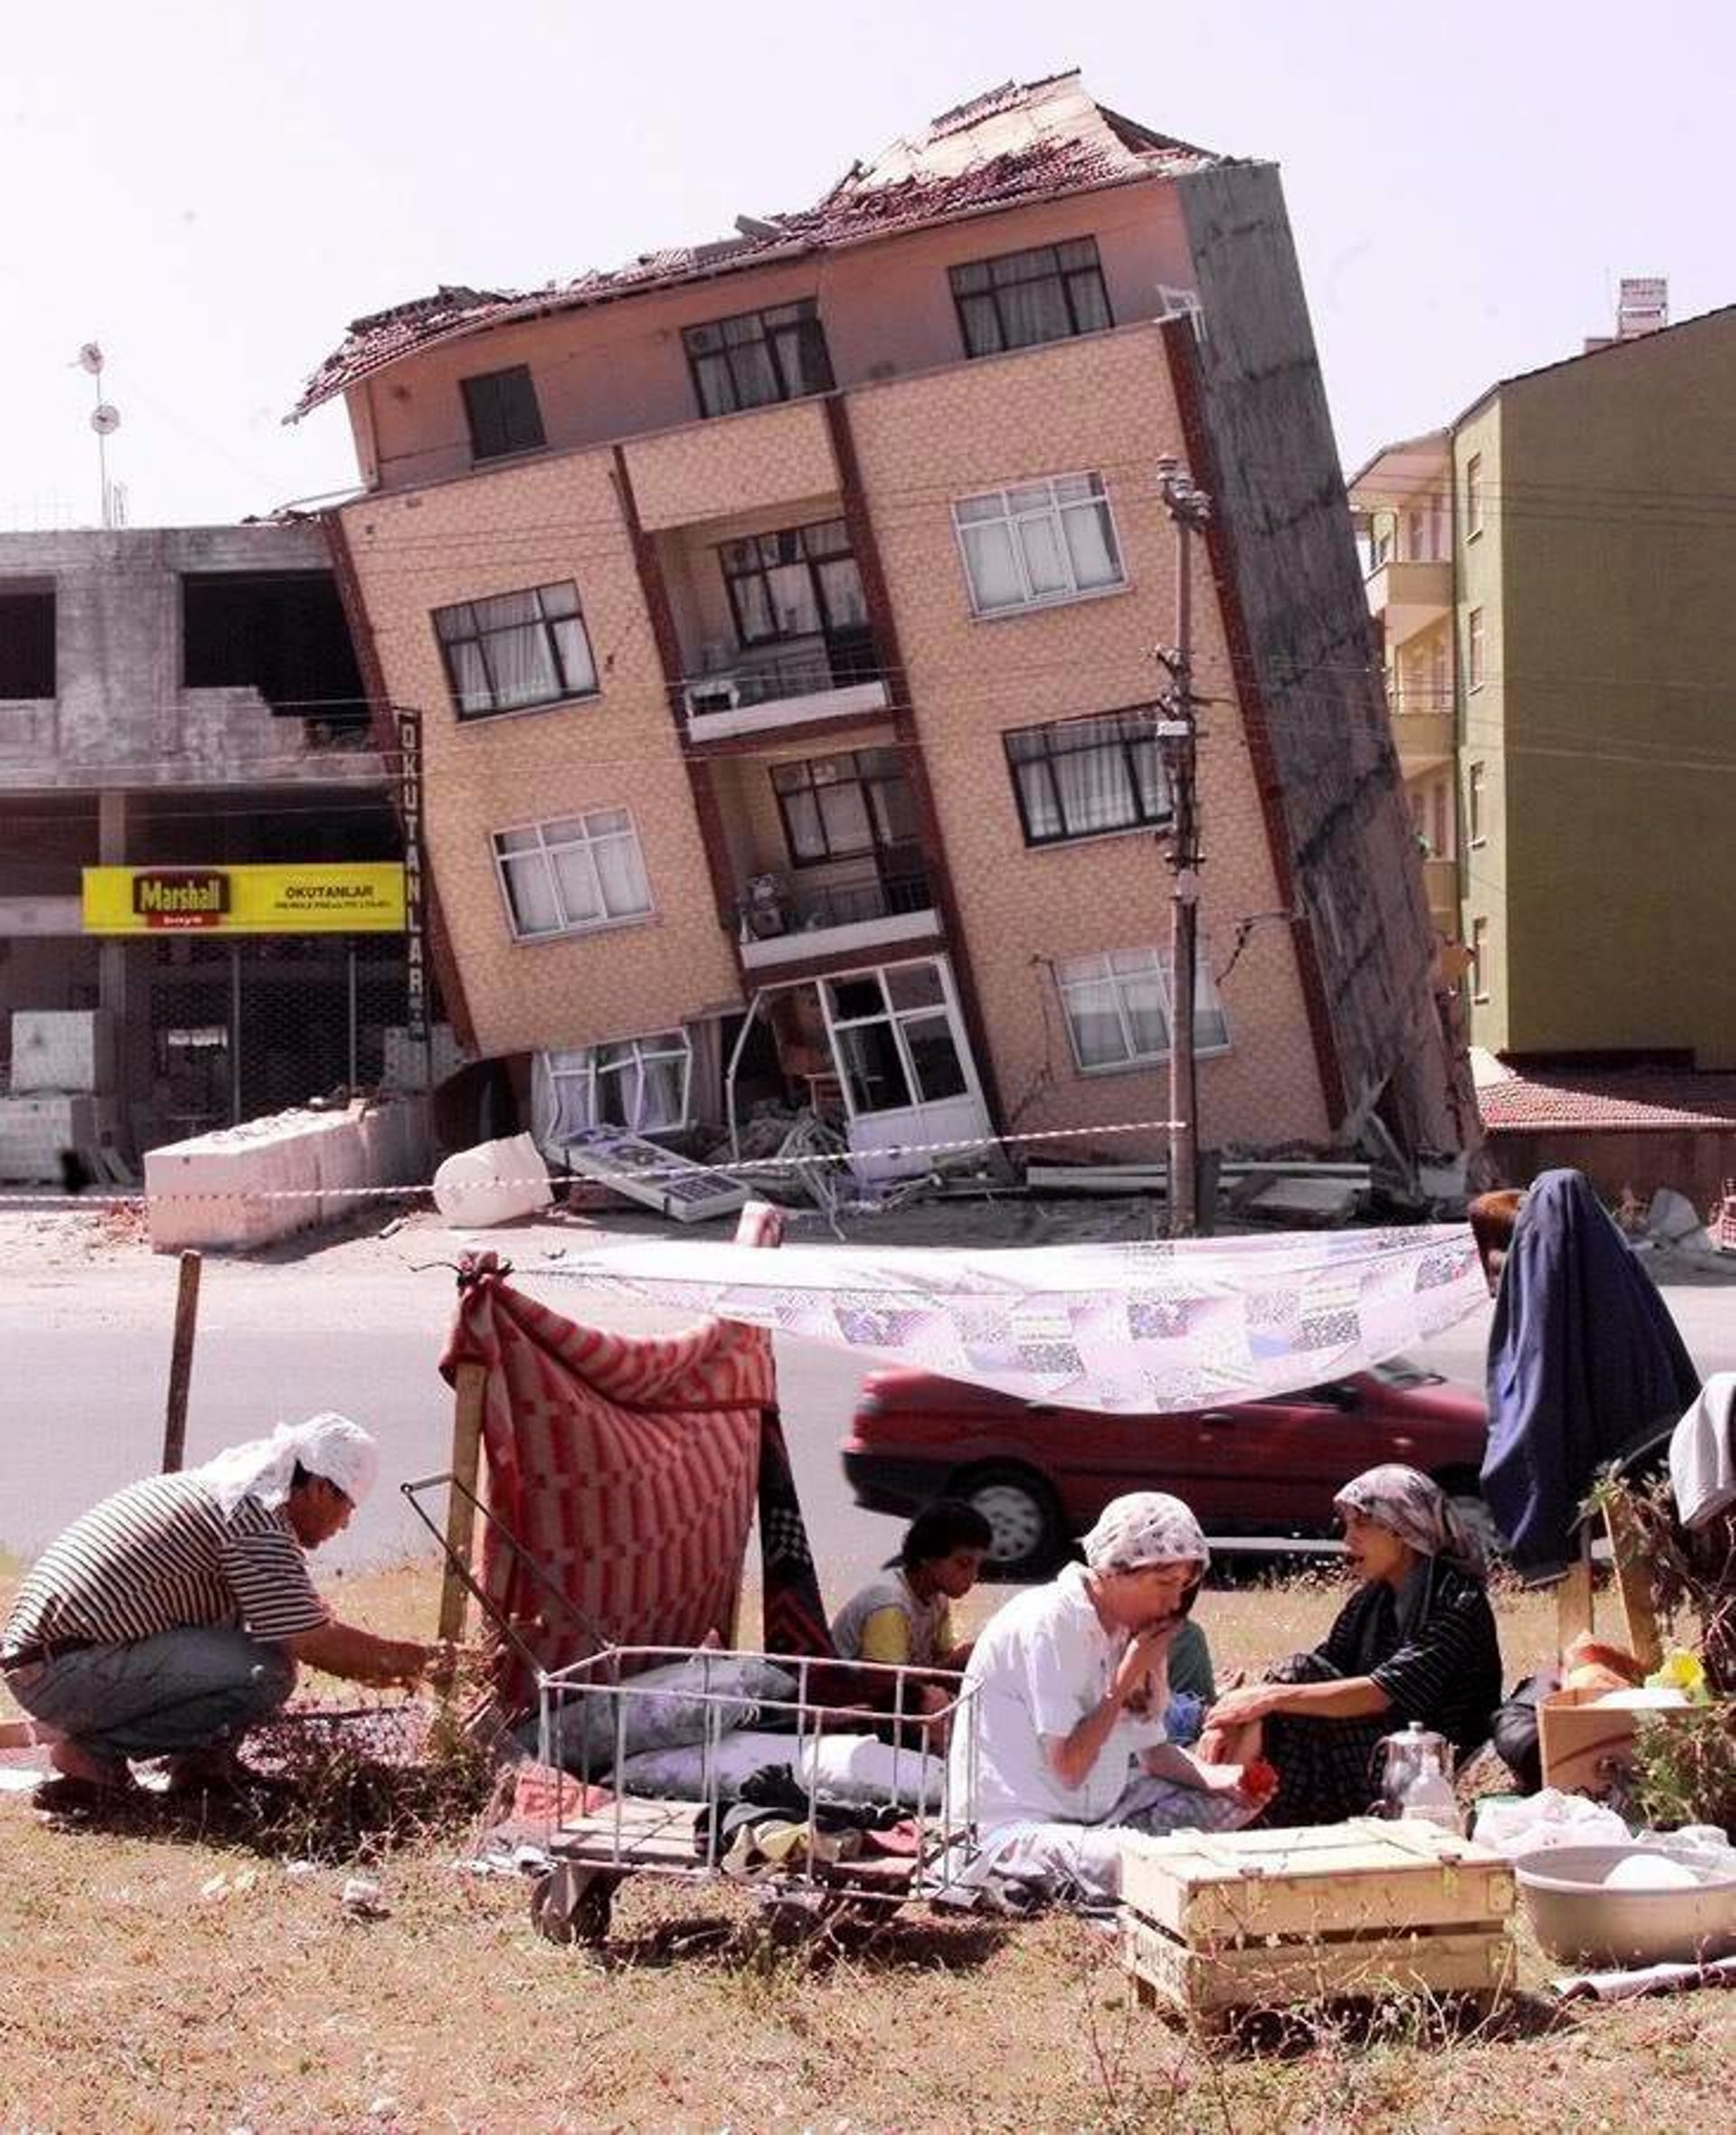 A family camps in front of a wrecked house in Izmit, Aug 17, 1999: More than 2,000 people died in the 7.4 quake. More than 17,000 died in the province.